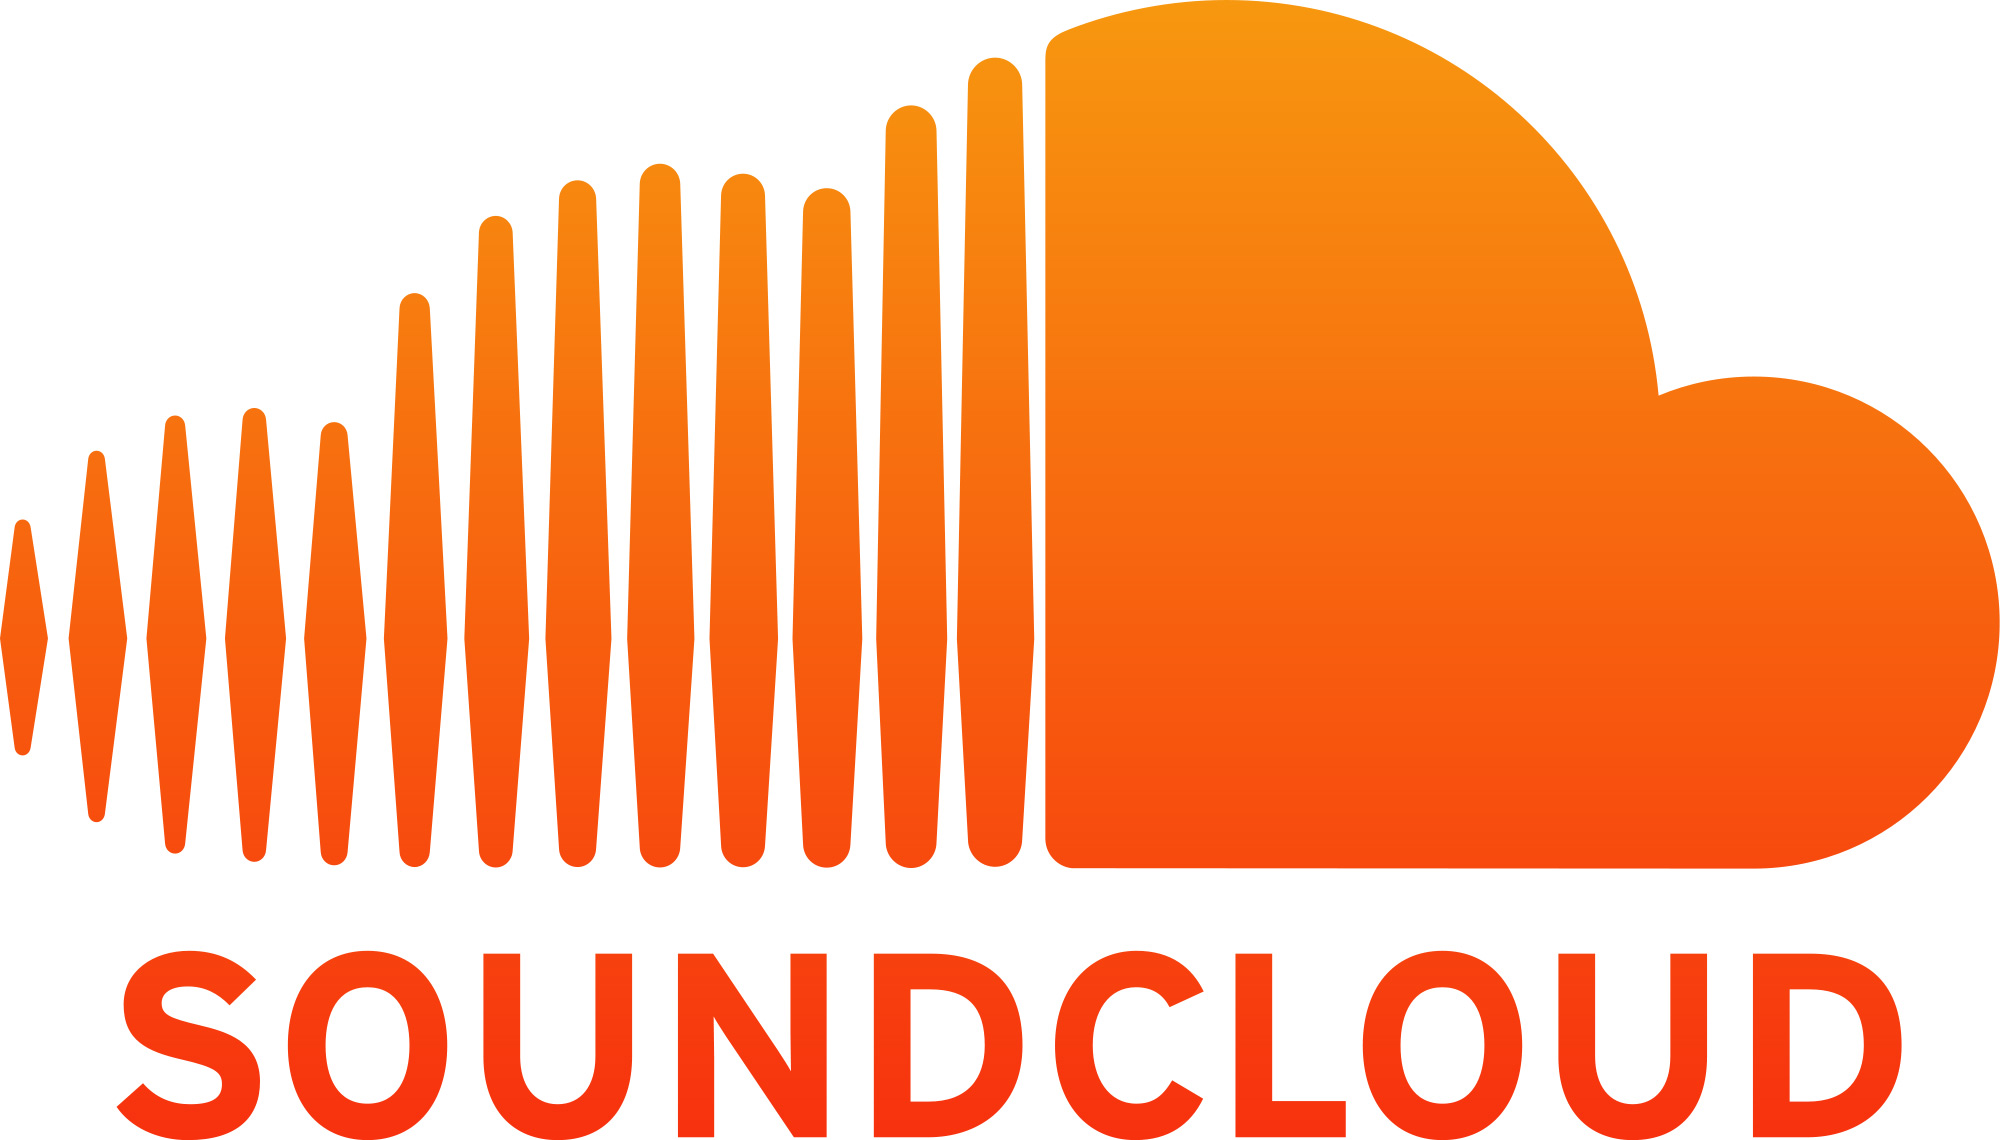 soundcloud-logo.jpg - 215.20 KB